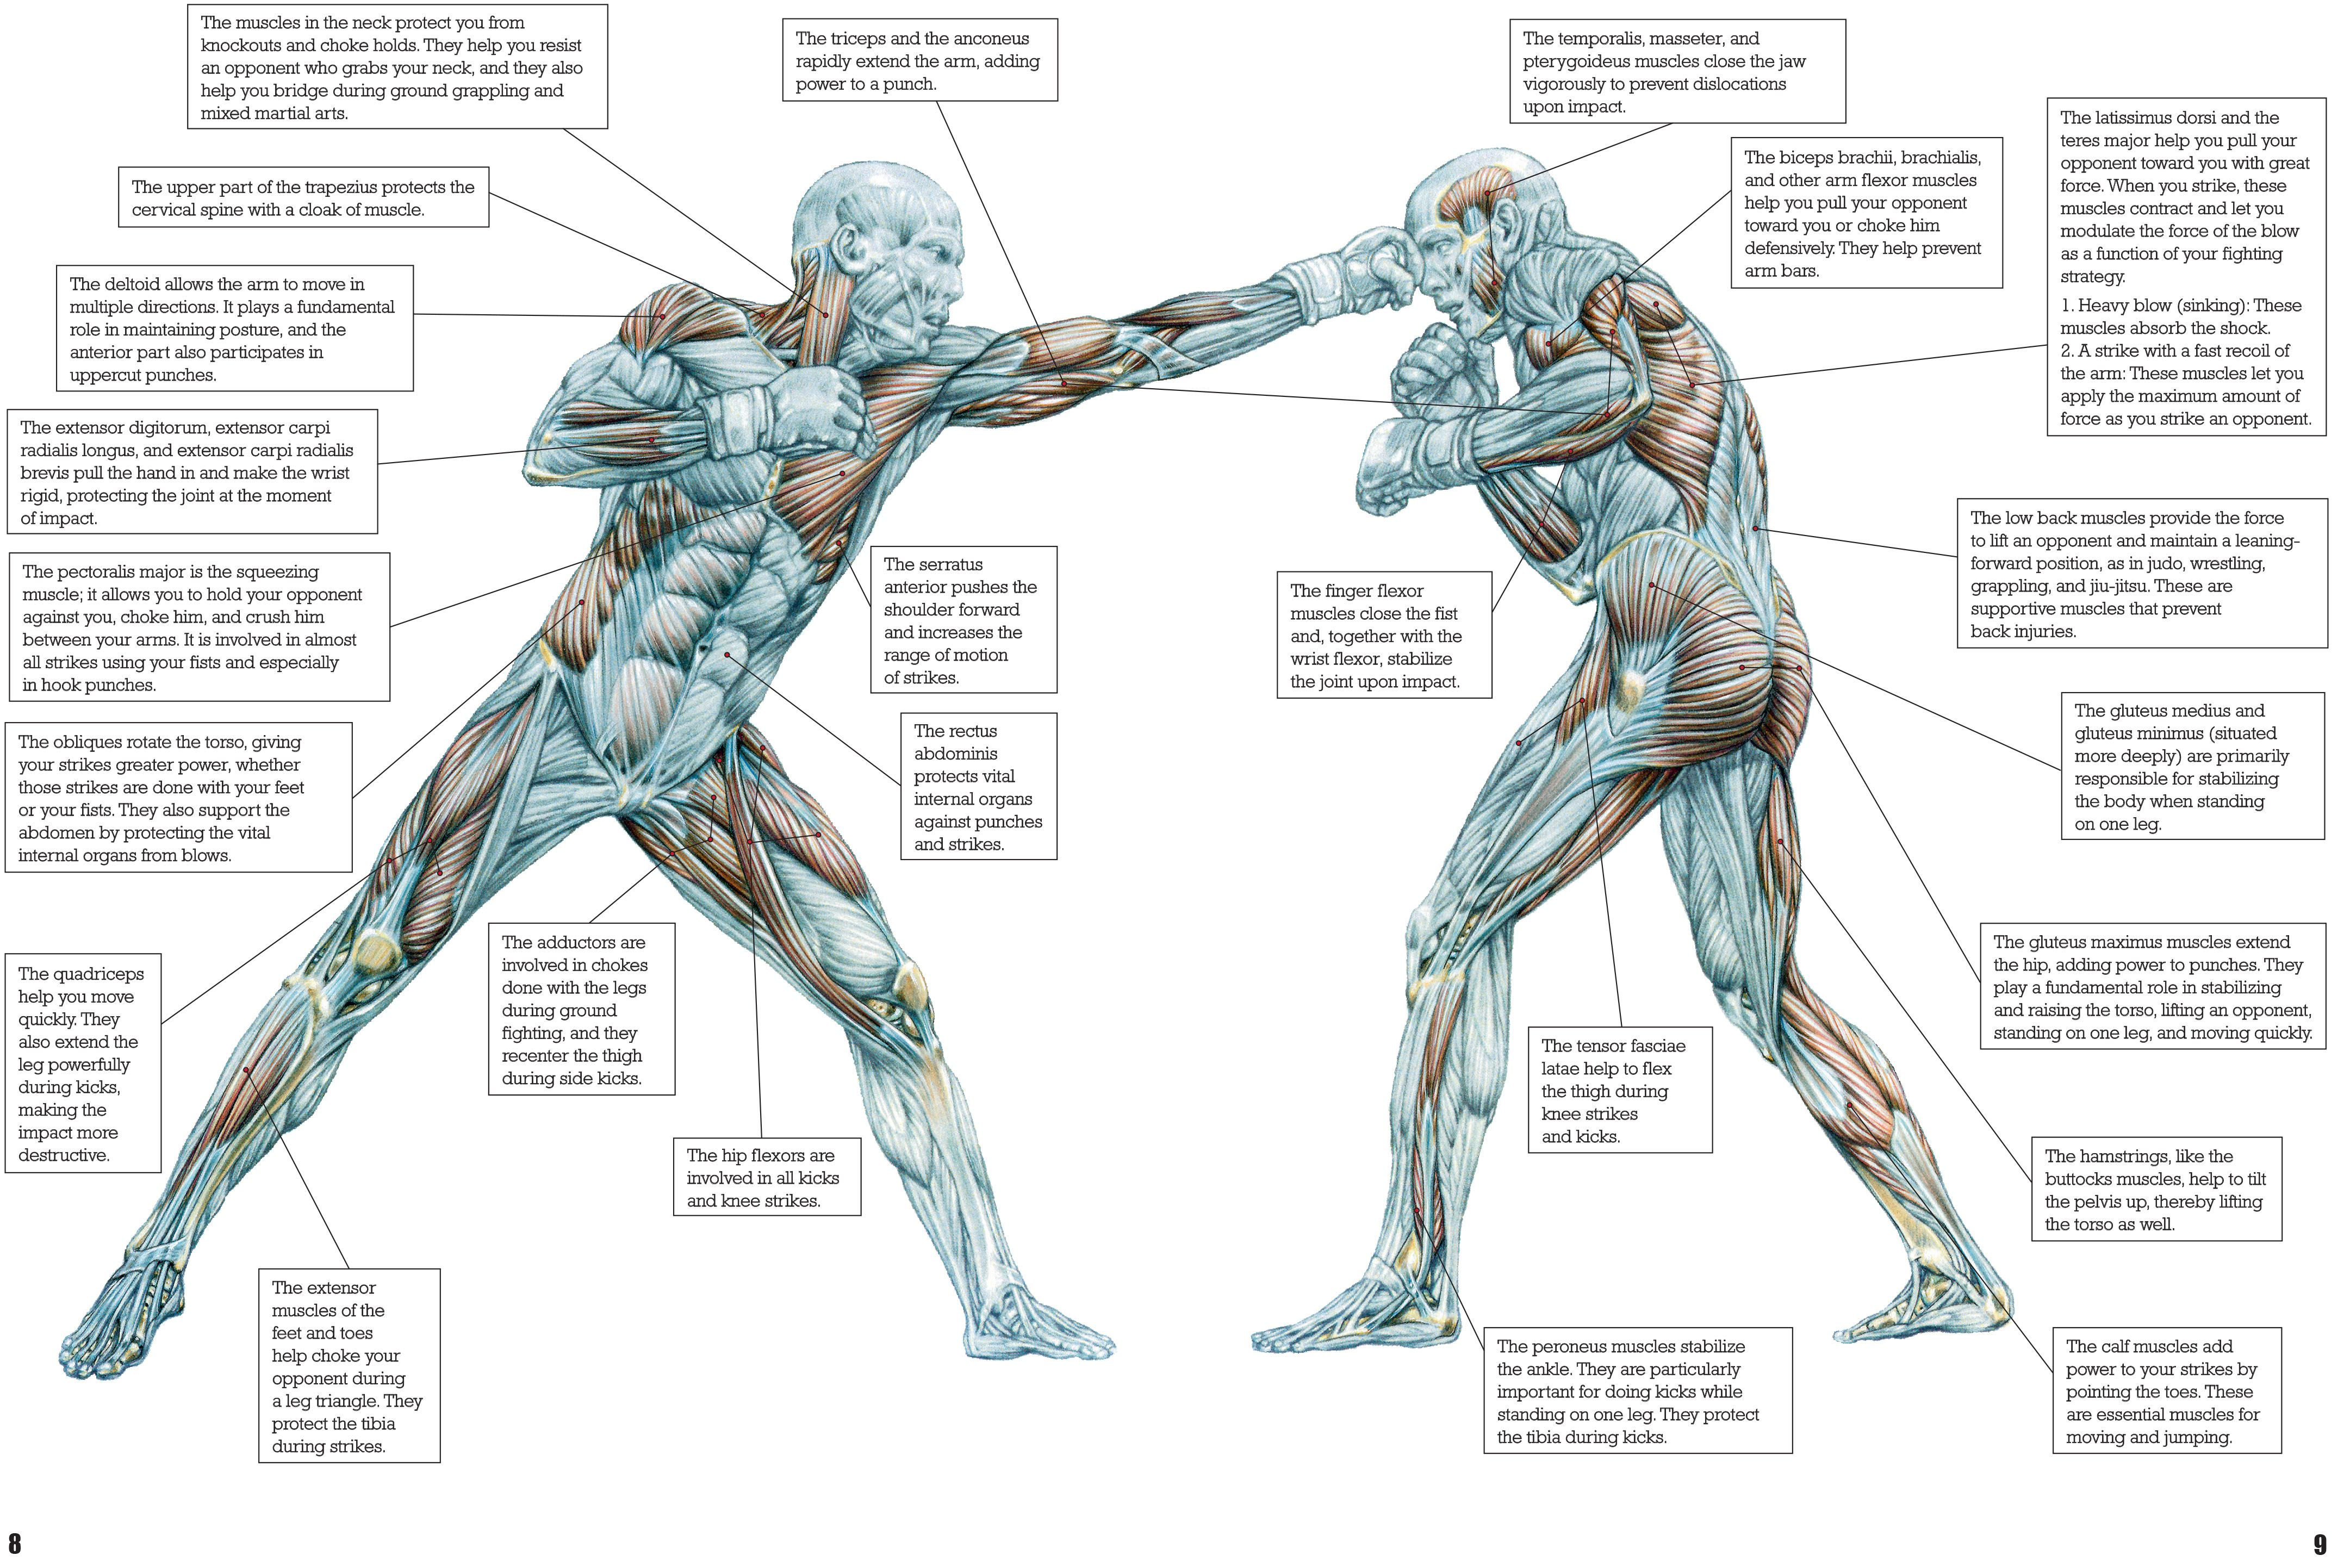 frederic delavier strength training anatomy Print | Martial Arts ...